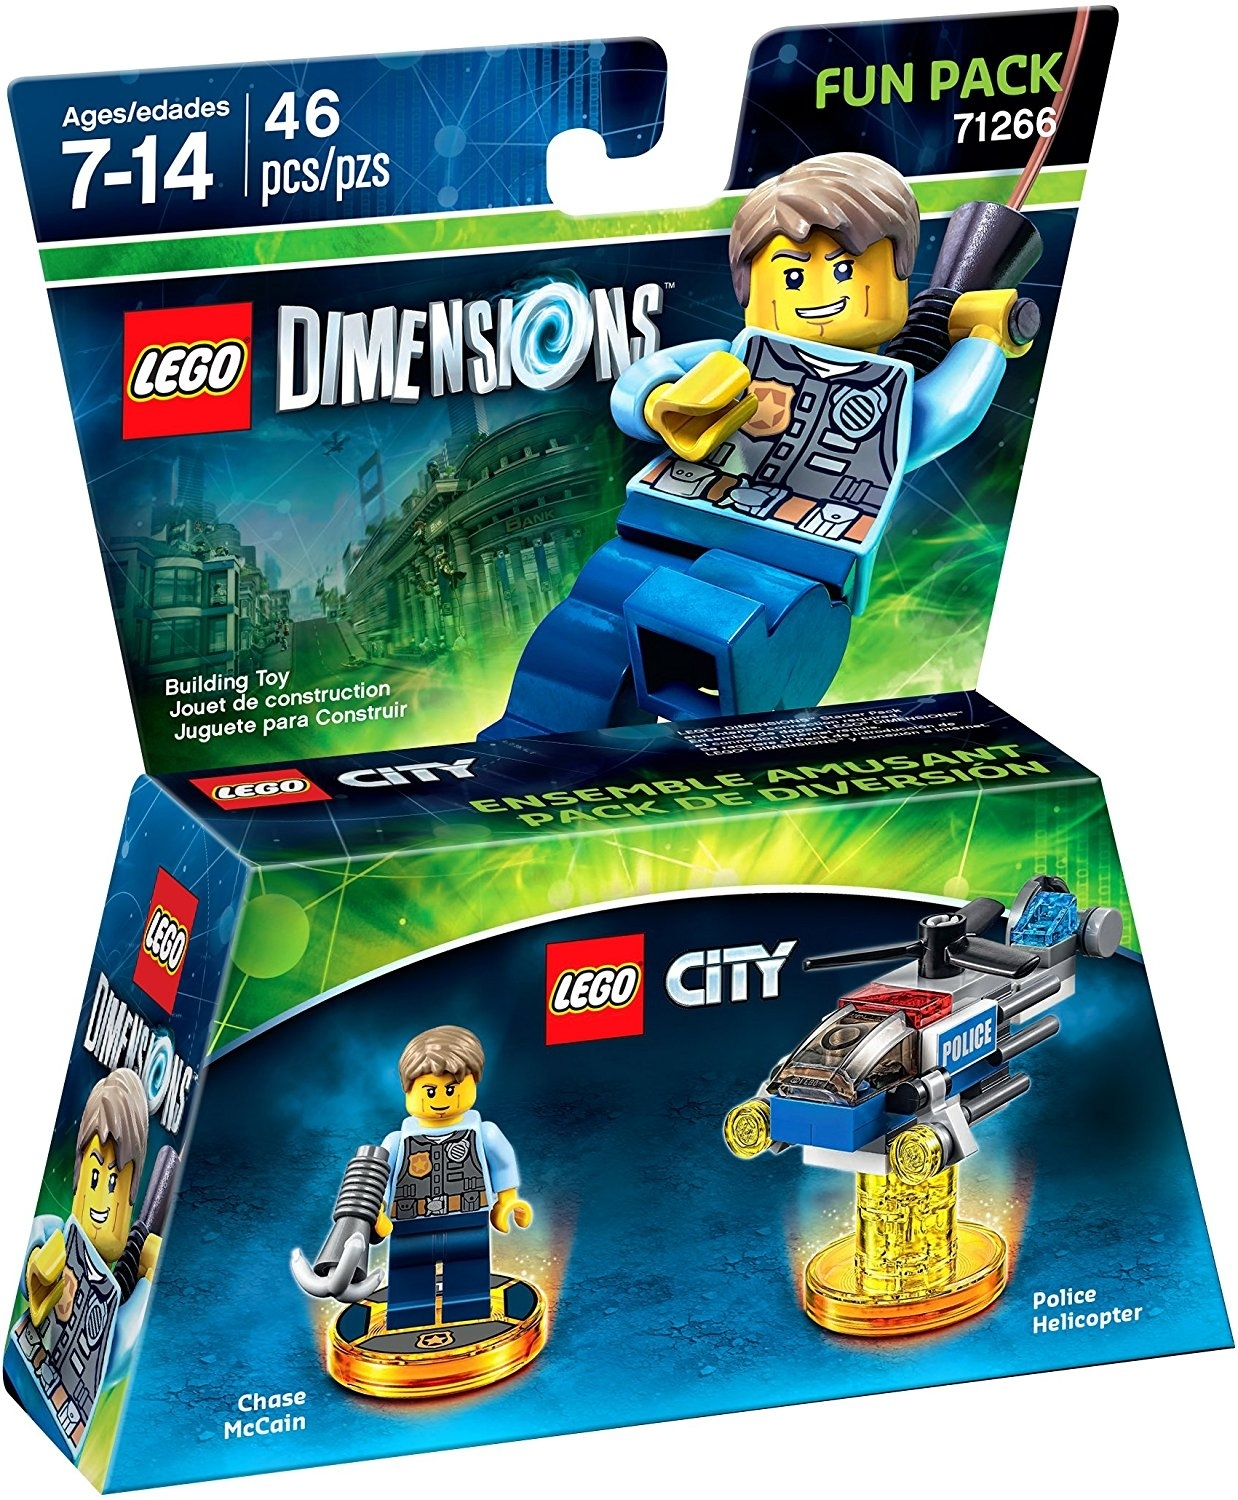 LEGO Dimensions Fun Pack Lego City Chase McCain 71266